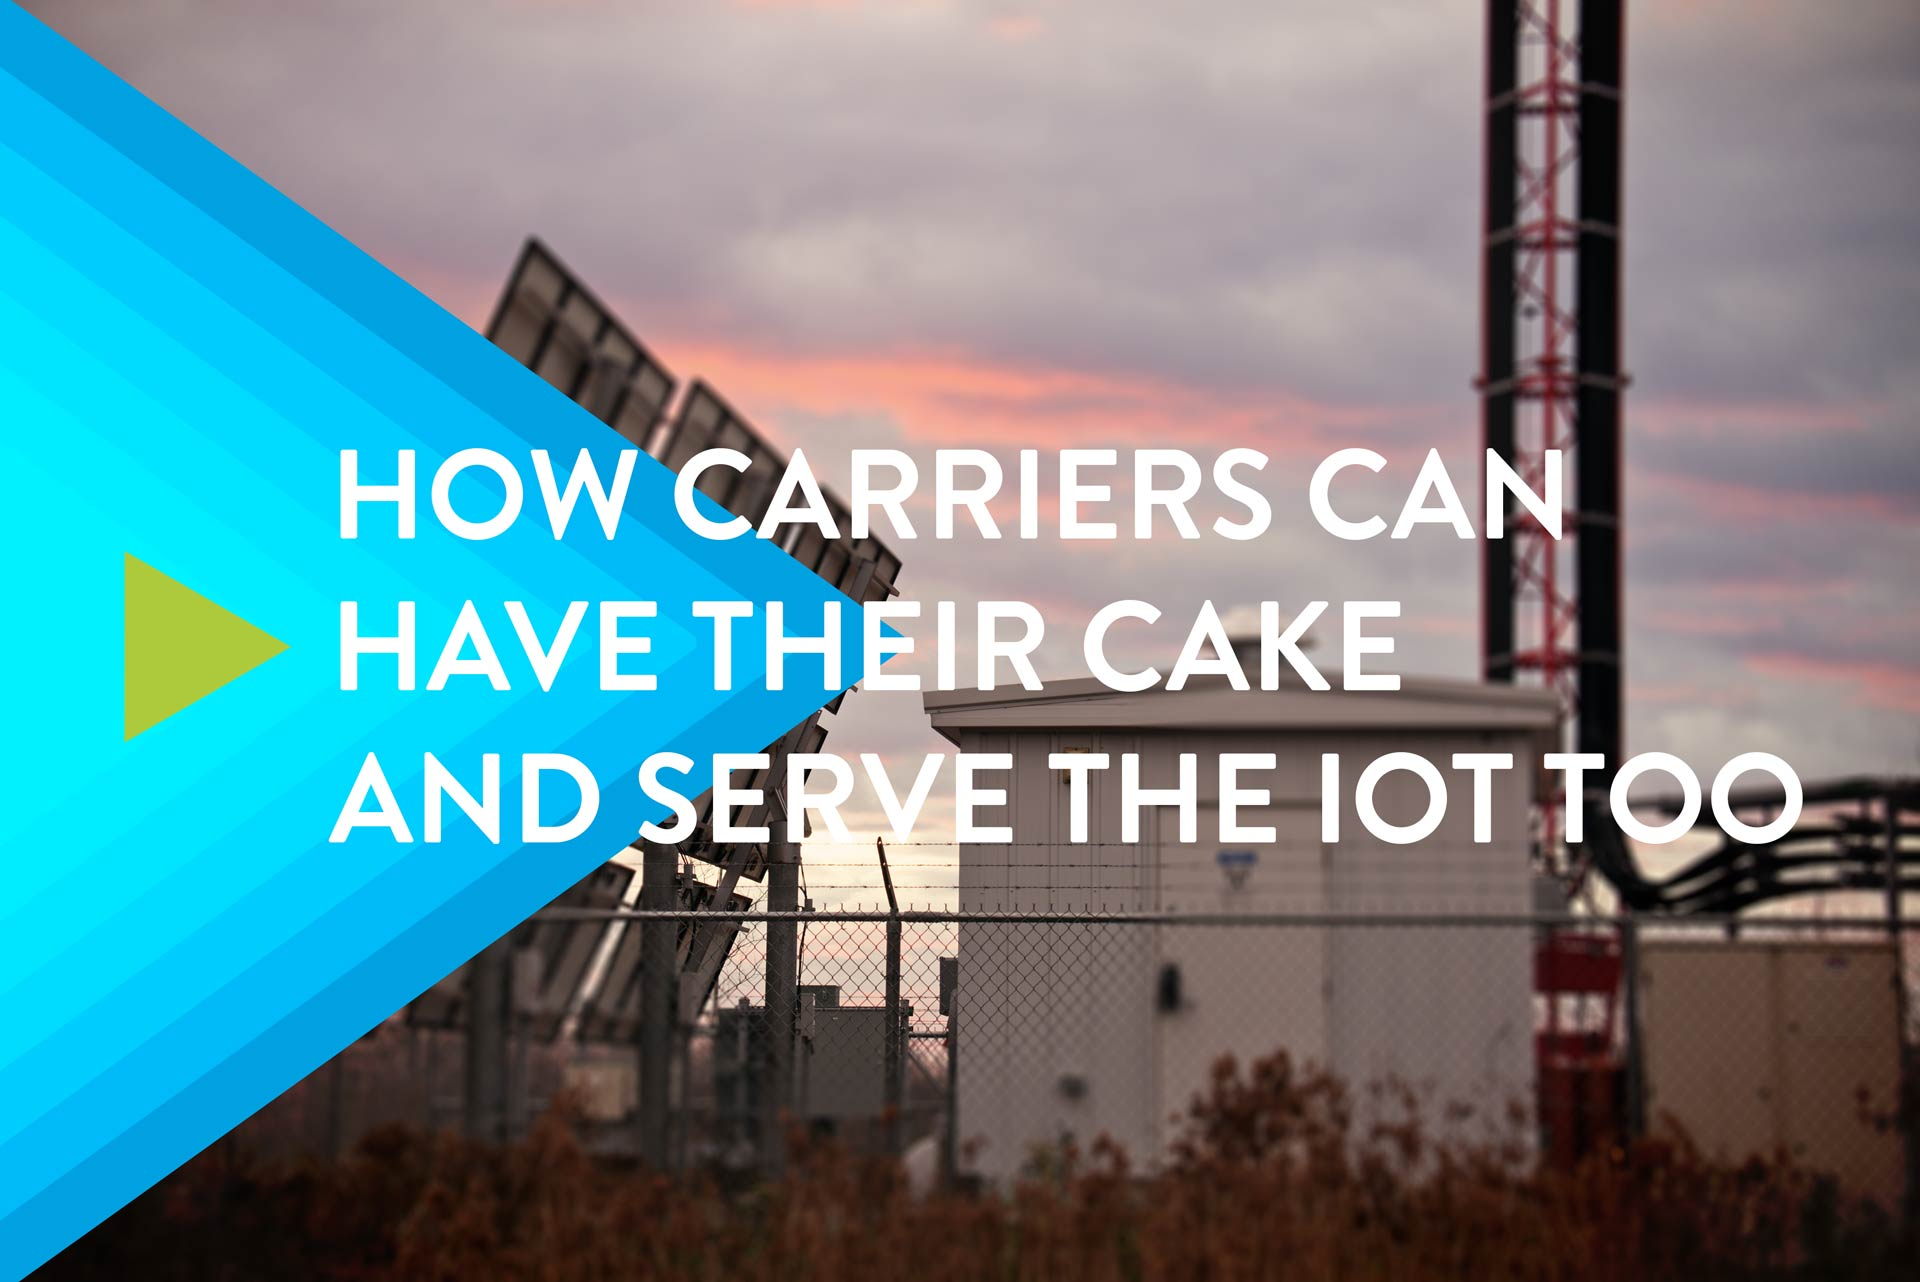 Serve the IoT